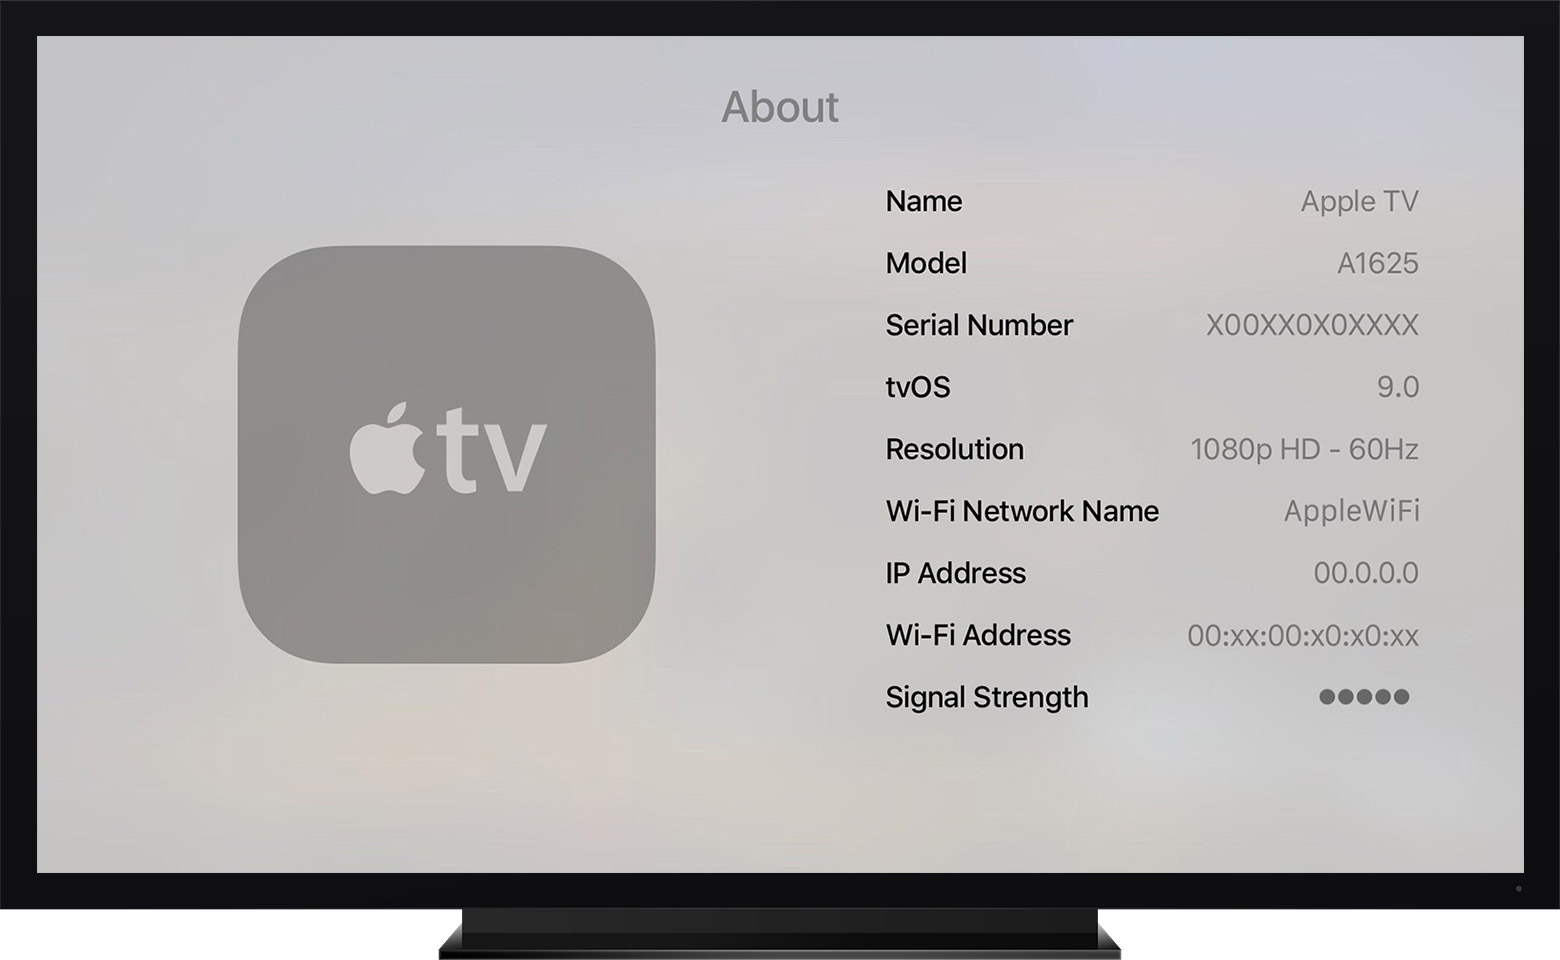 Apple TV About Screen